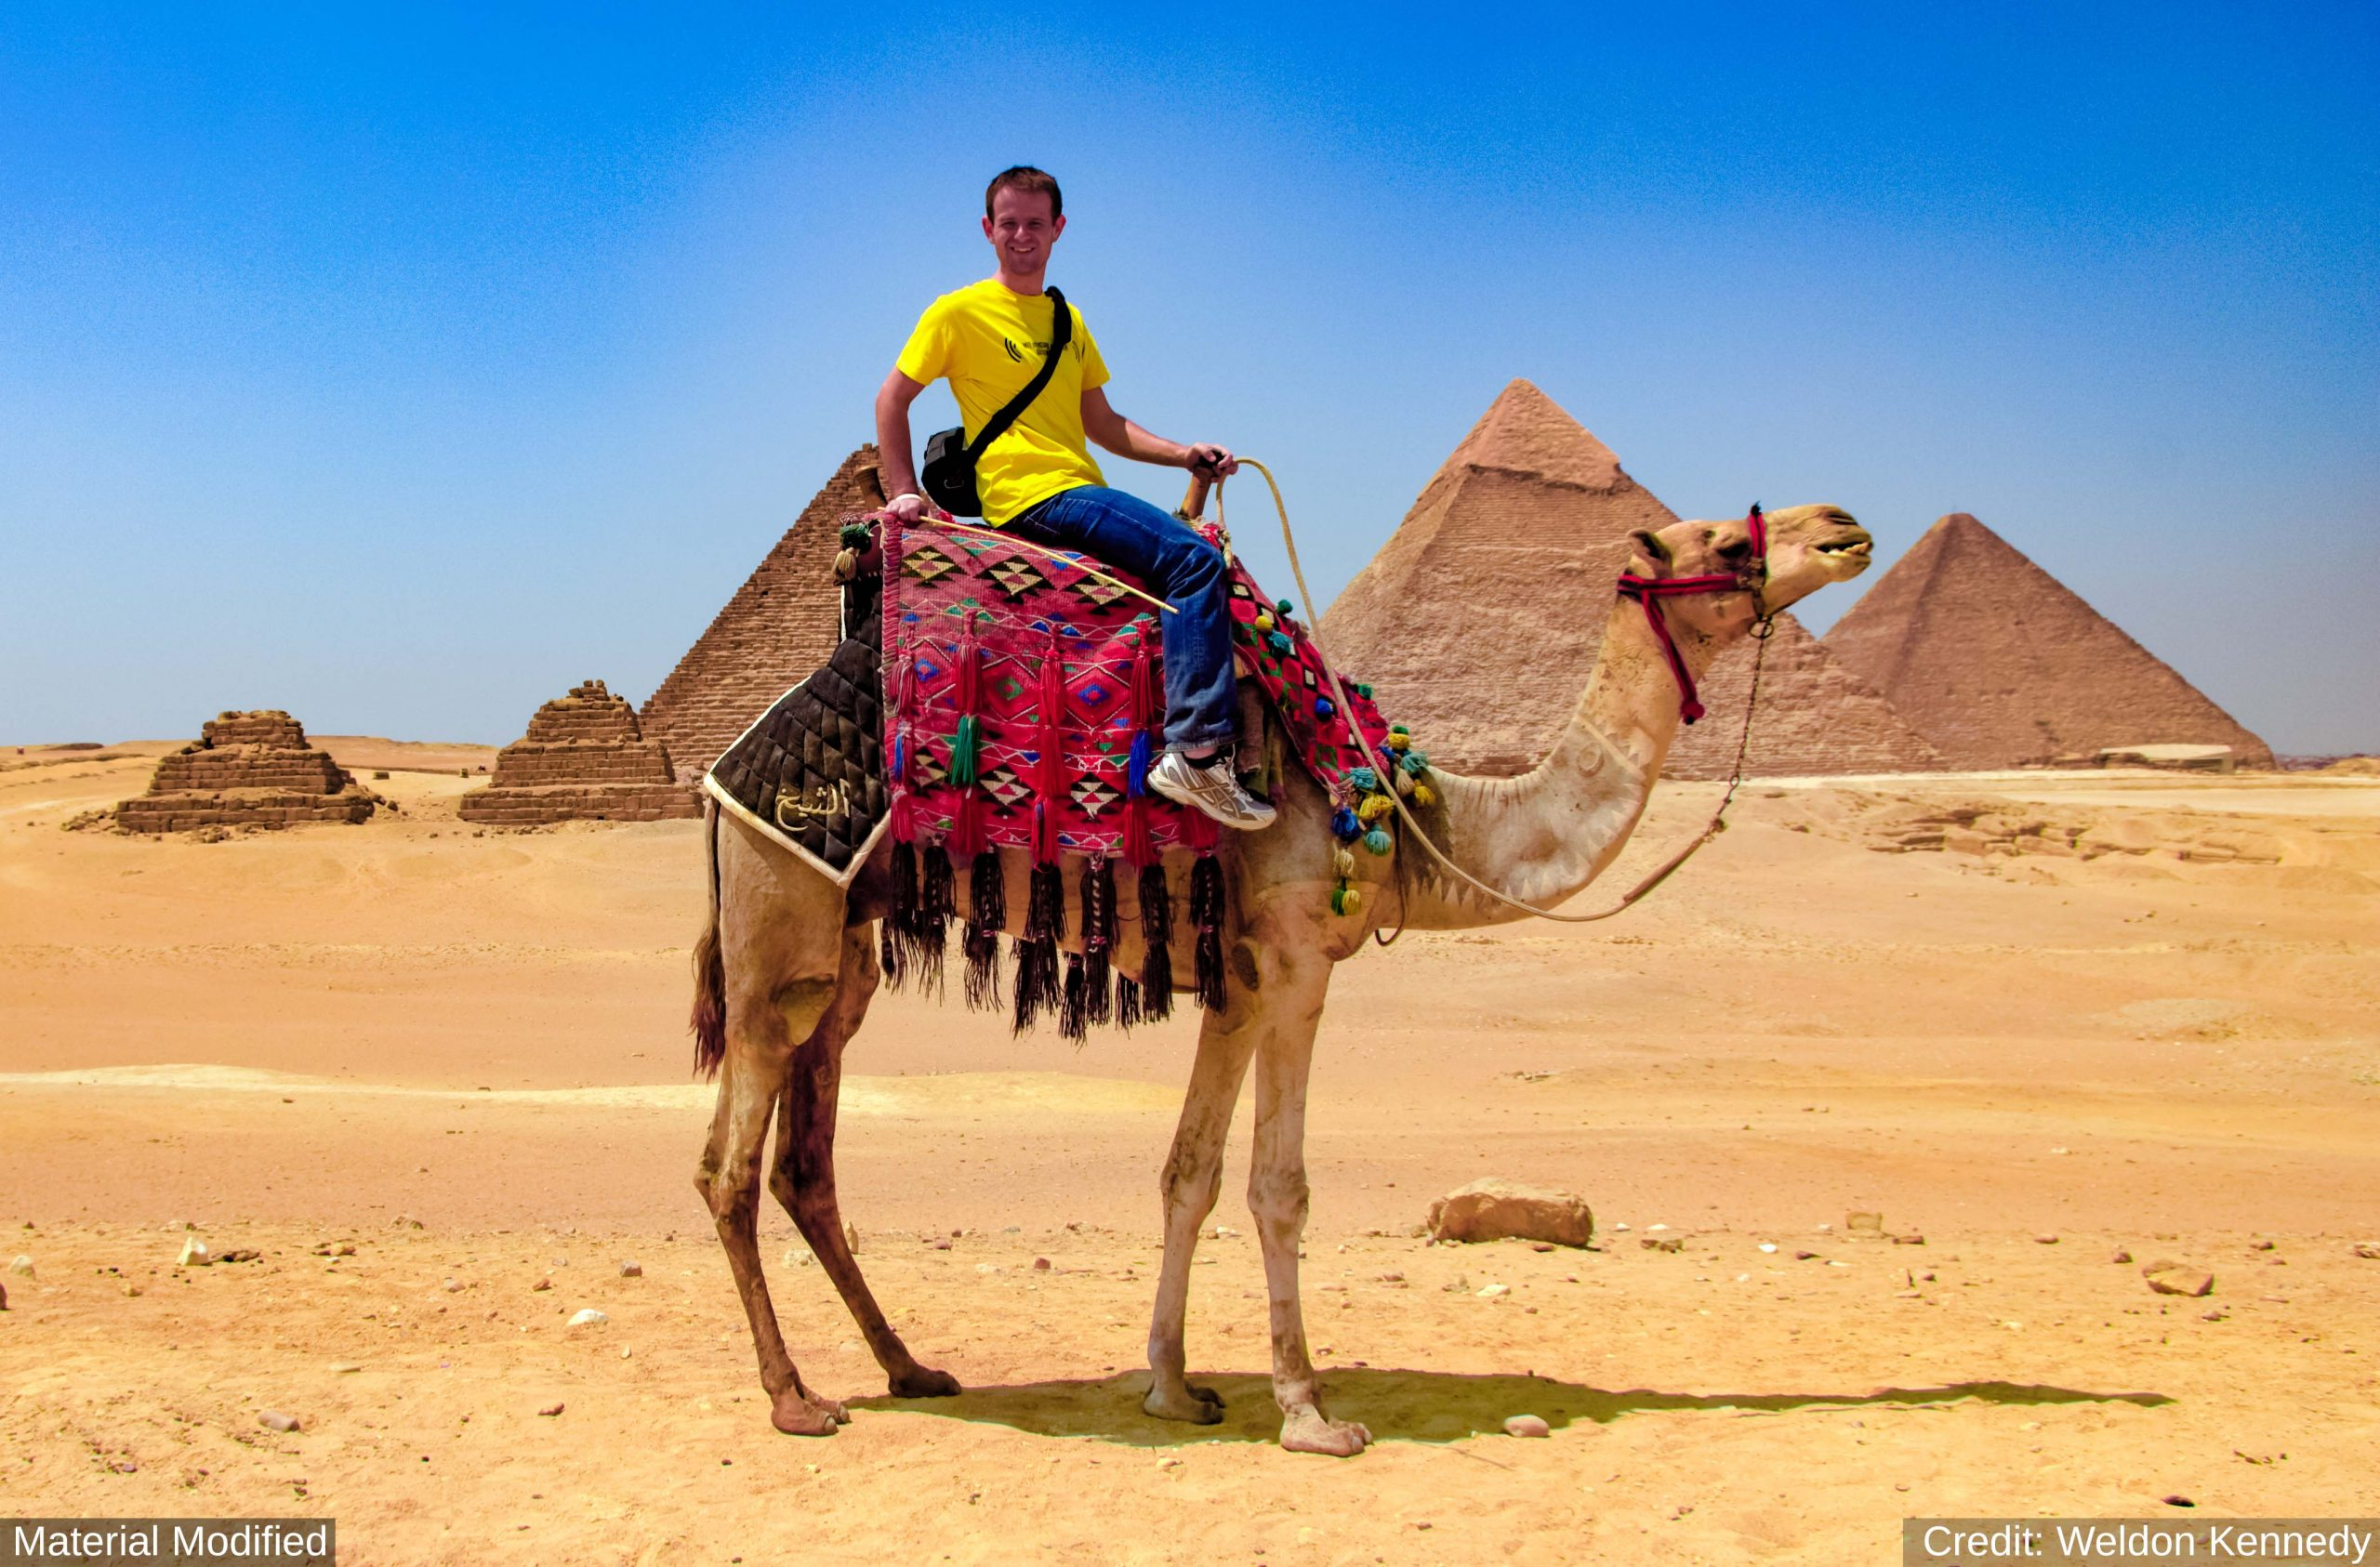 Egypt: See & Experience the Ancient Sites in 9 Days, 1st Class Traveling